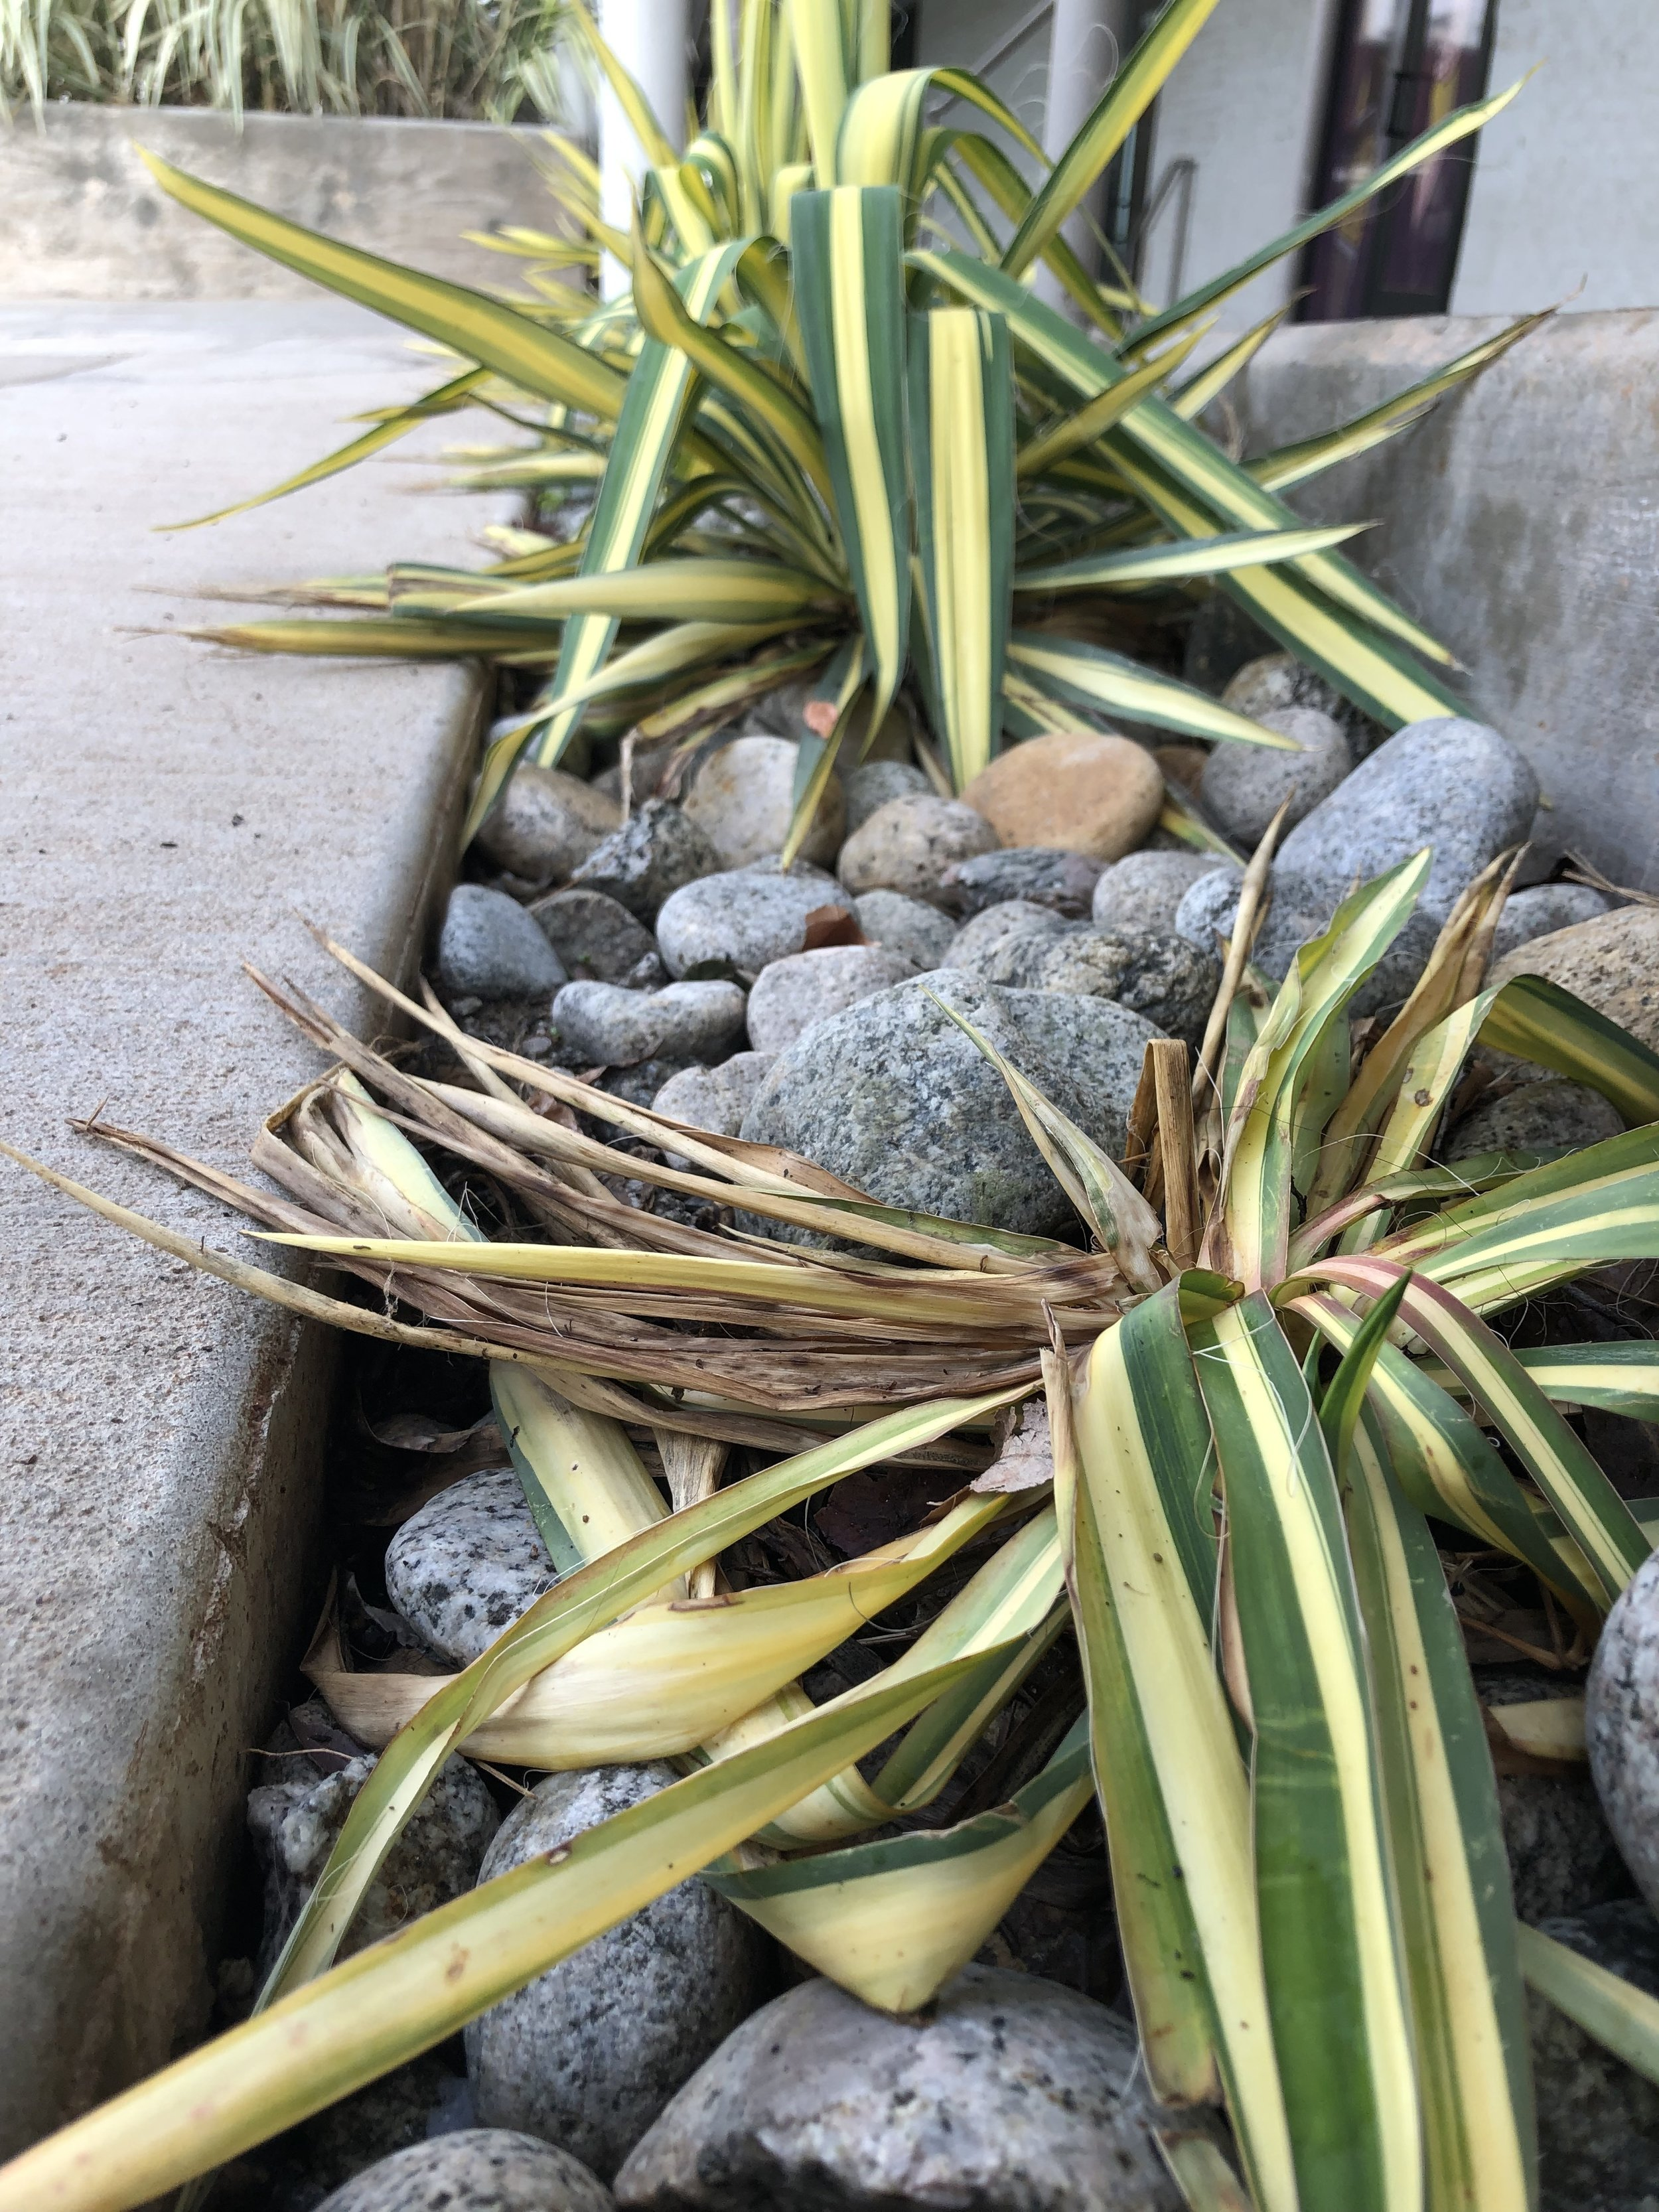 Xeriscape – Selecting more draught tolerant plants has become more and more popular. Overall, I think it is a good idea - in the right location. But, yucca and many other xeriscape favorites, are having a rough start to the year. These plant selections don't need particularly great soil, but they do need to have good drainage and be soil that stays on the dryer side.